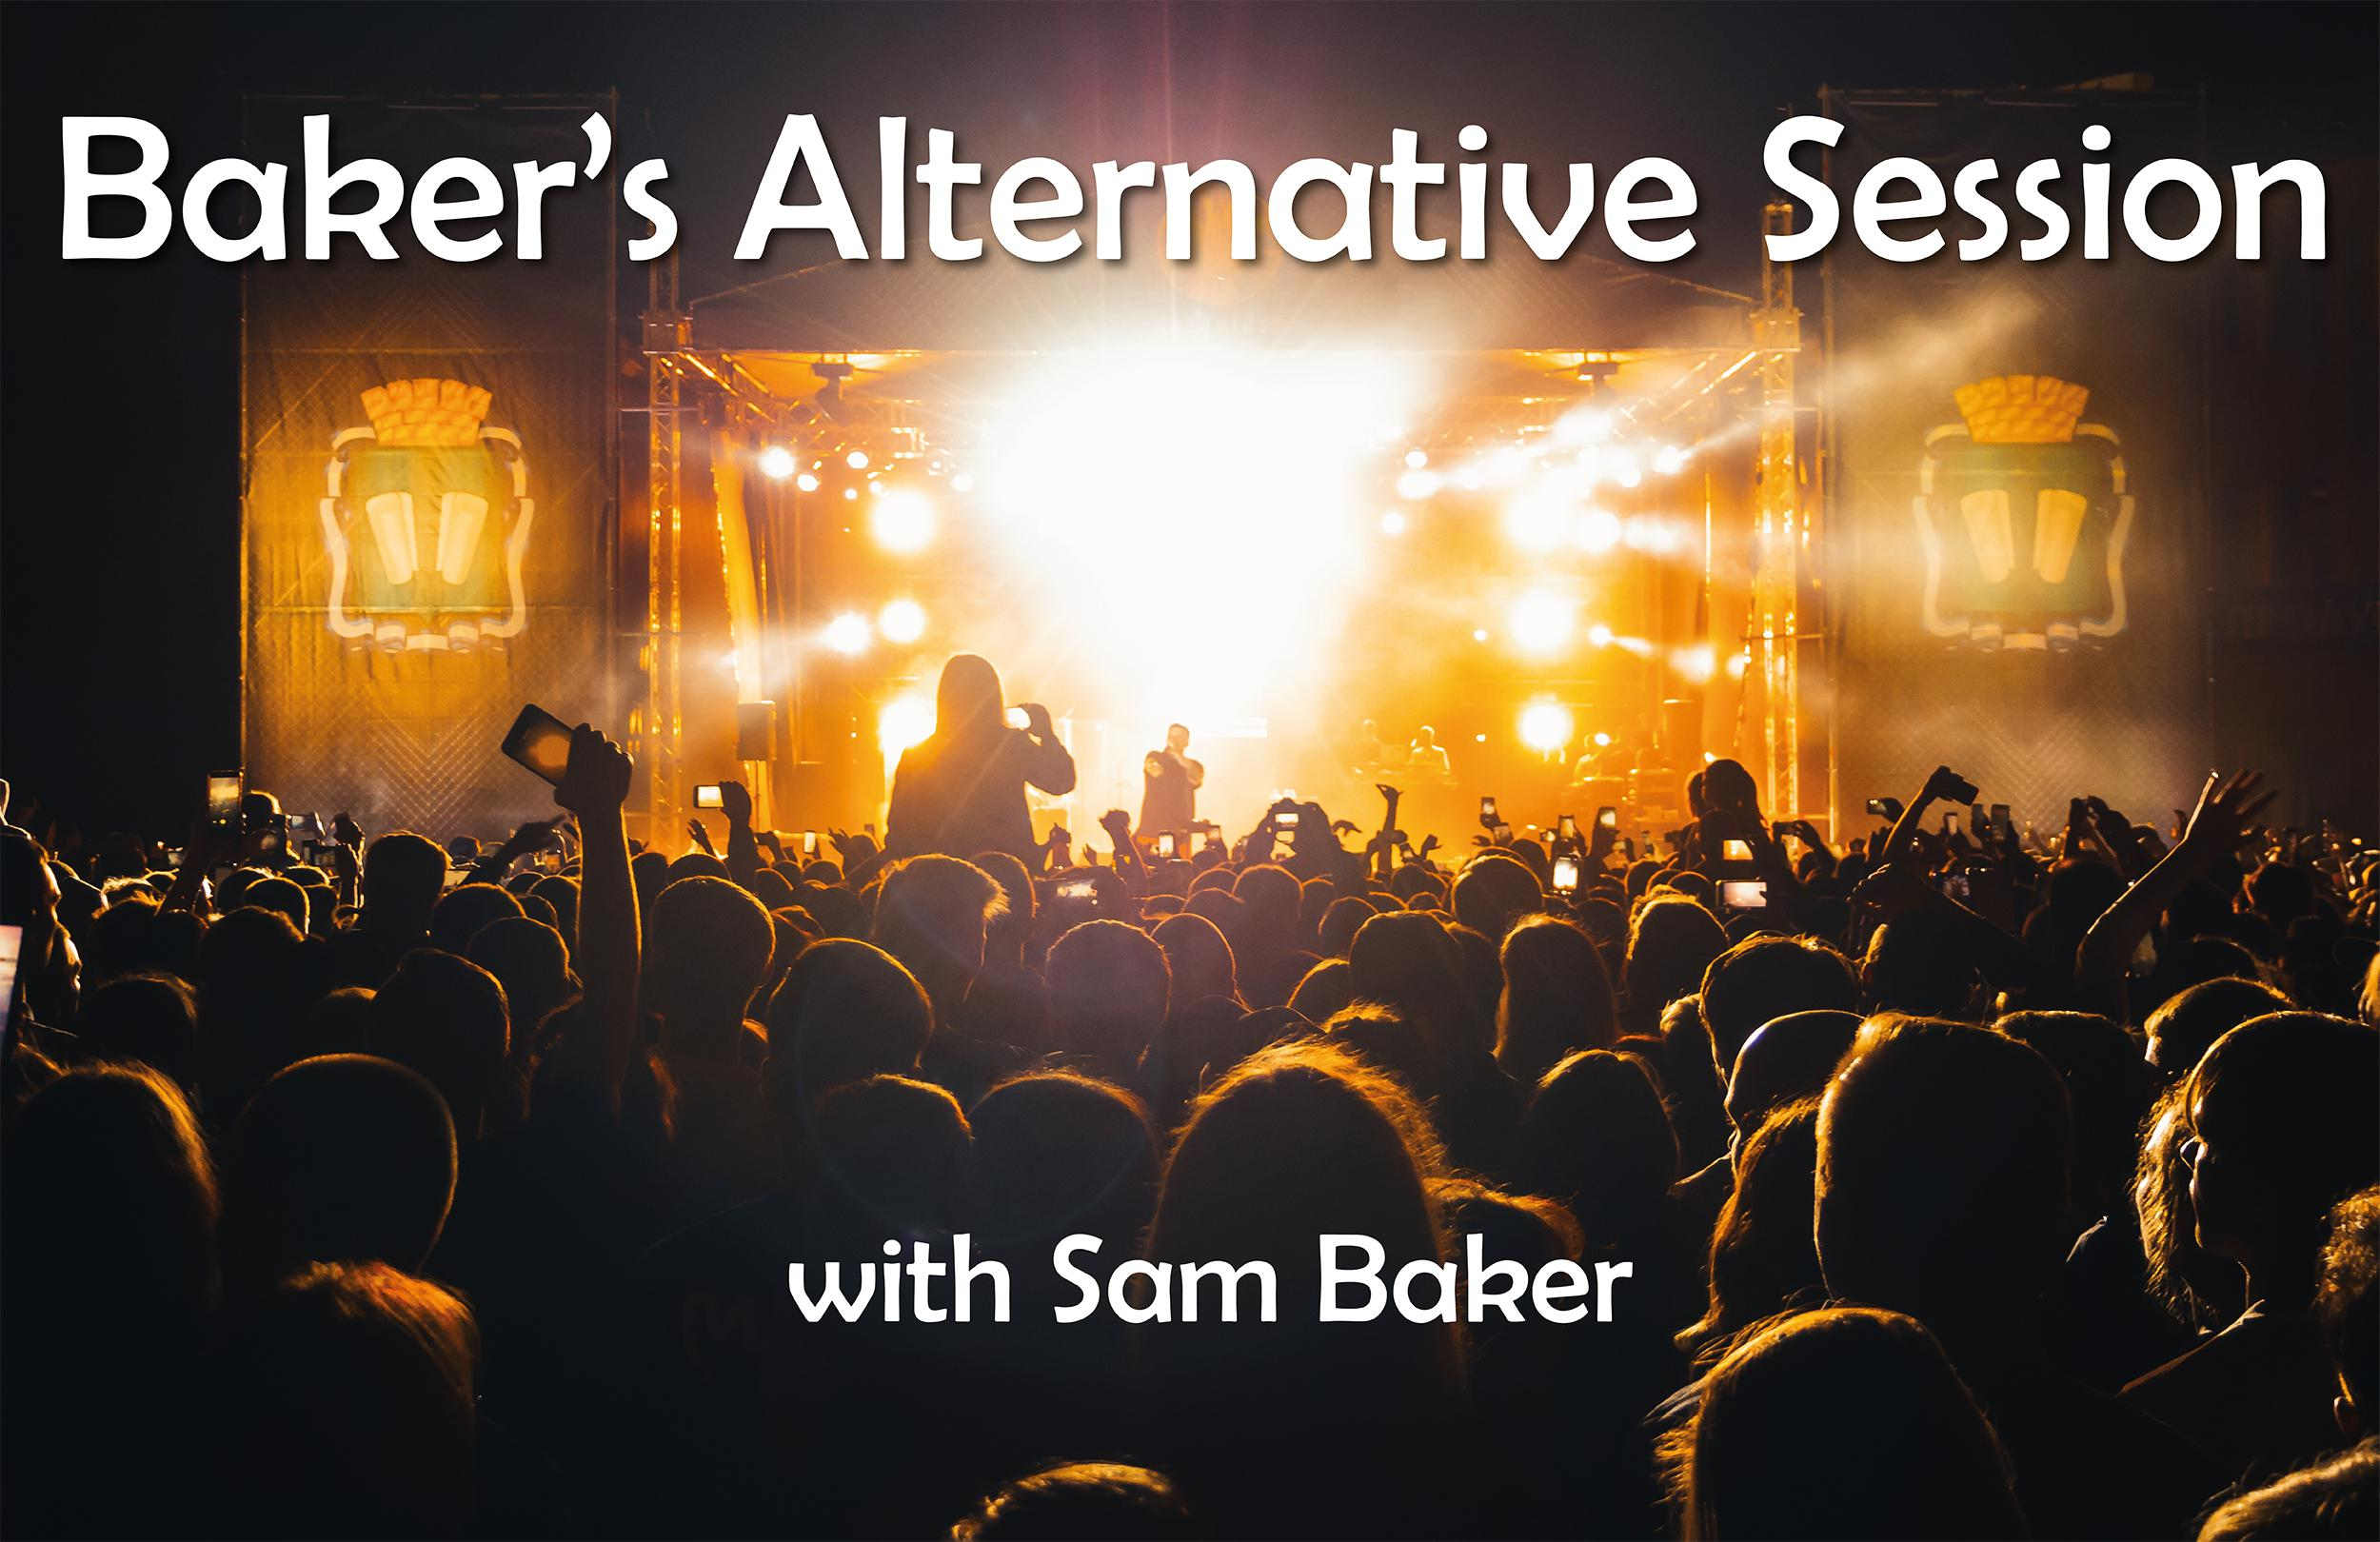 Baker's Alternative Session